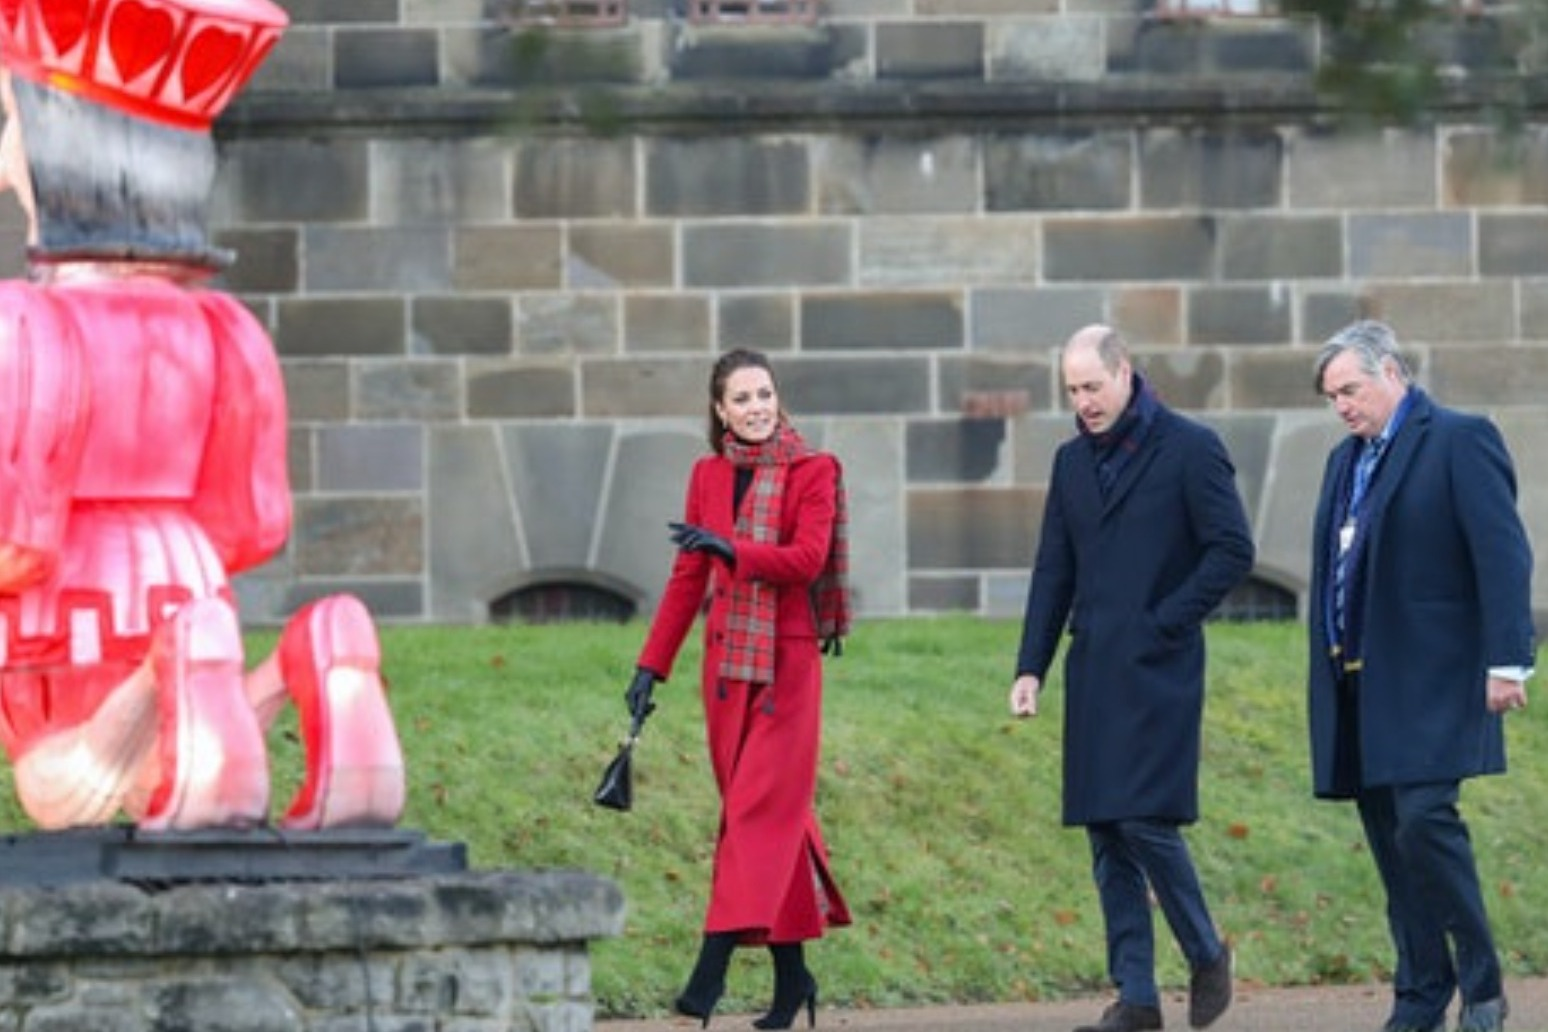 Welsh Health Minister criticises William and Kate's visit to Wales